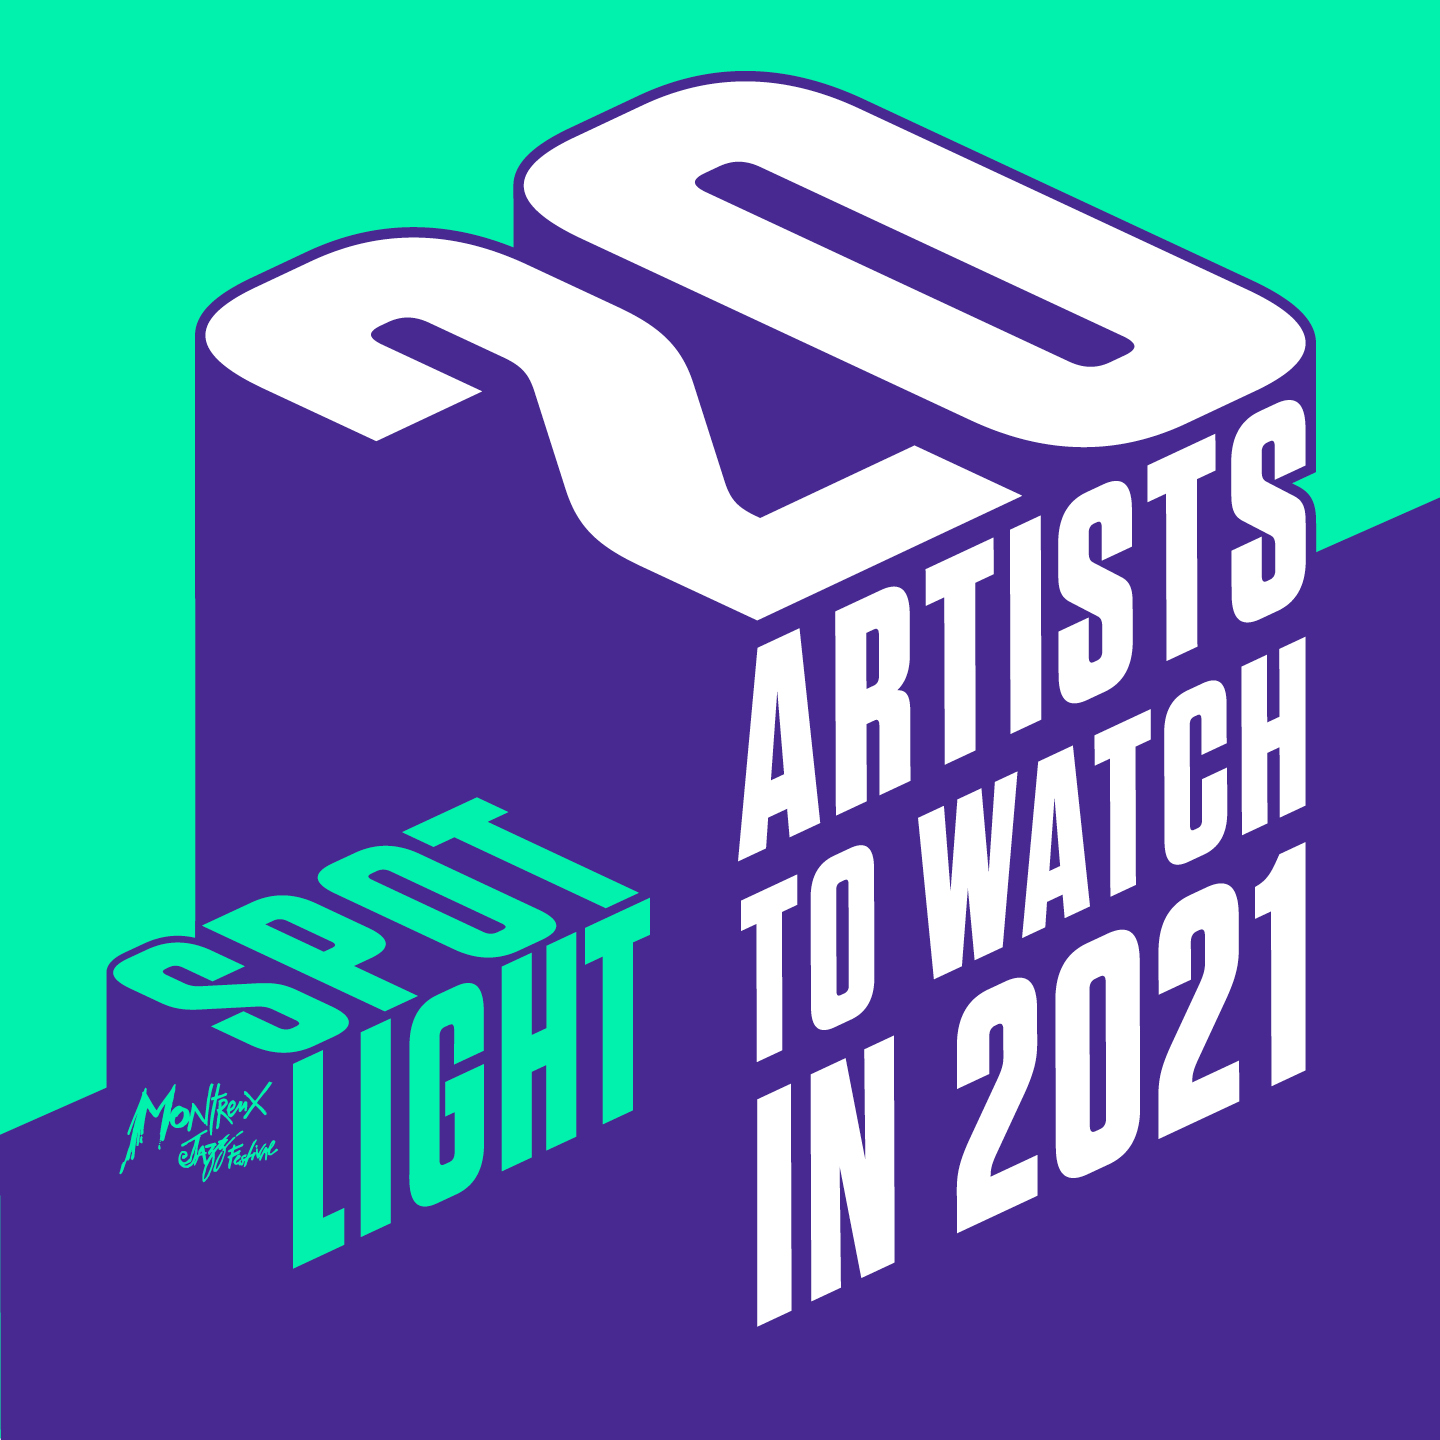 cover 20 artists to watch